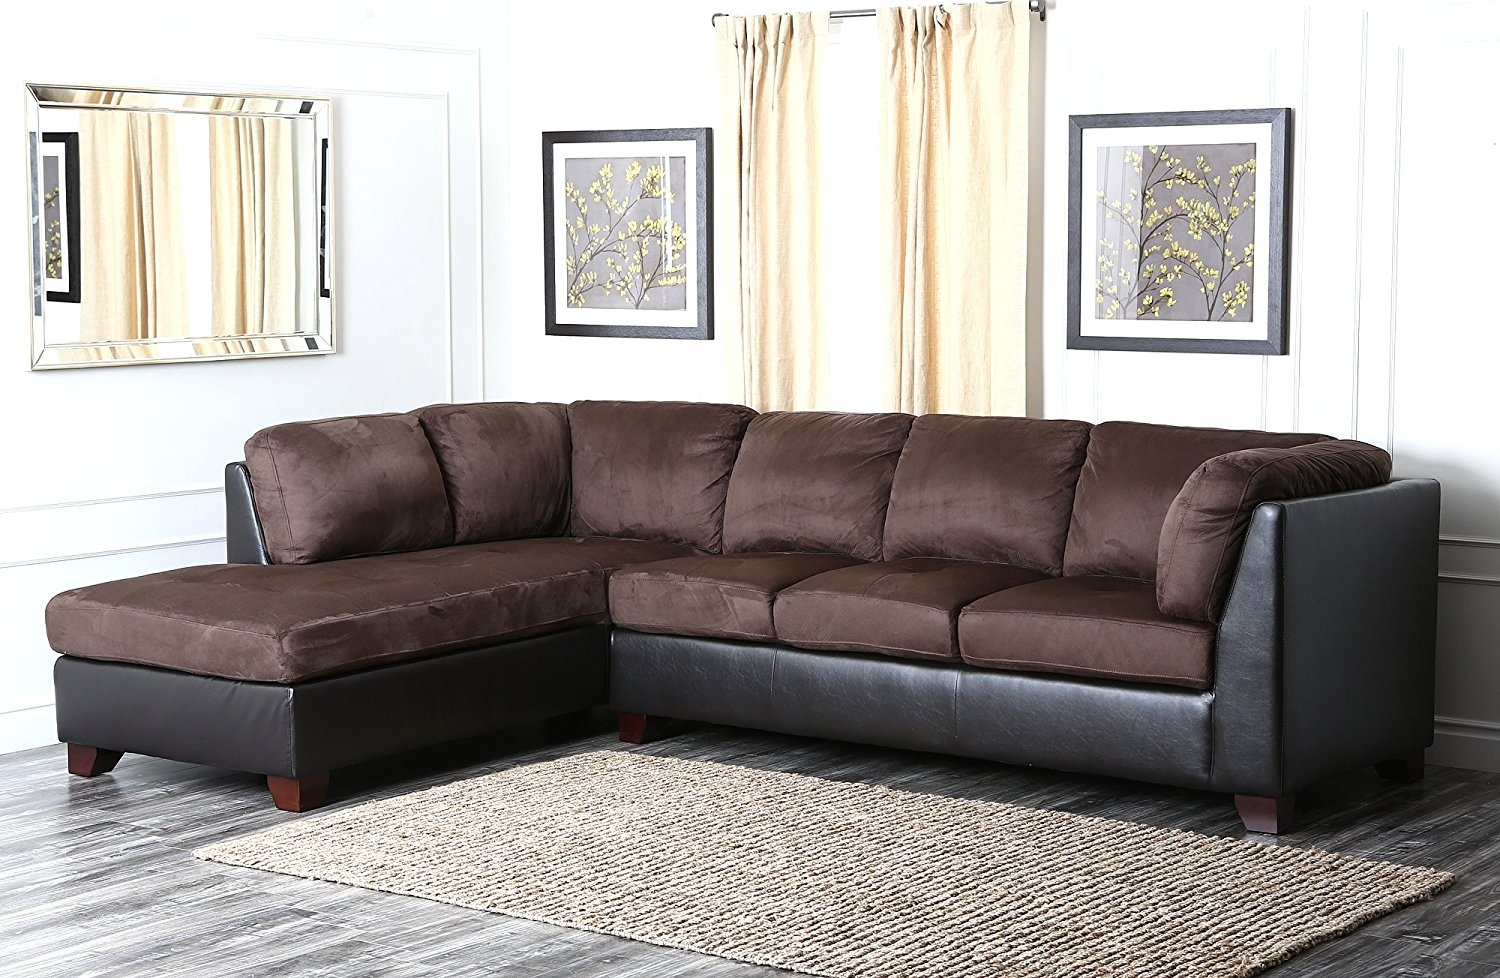 Amazon Abson Santa Maria Sectional Sofaottoman Dark Brown For Abbyson Living Charlotte Beige Sectional Sofa And Ottoman (Image 3 of 15)